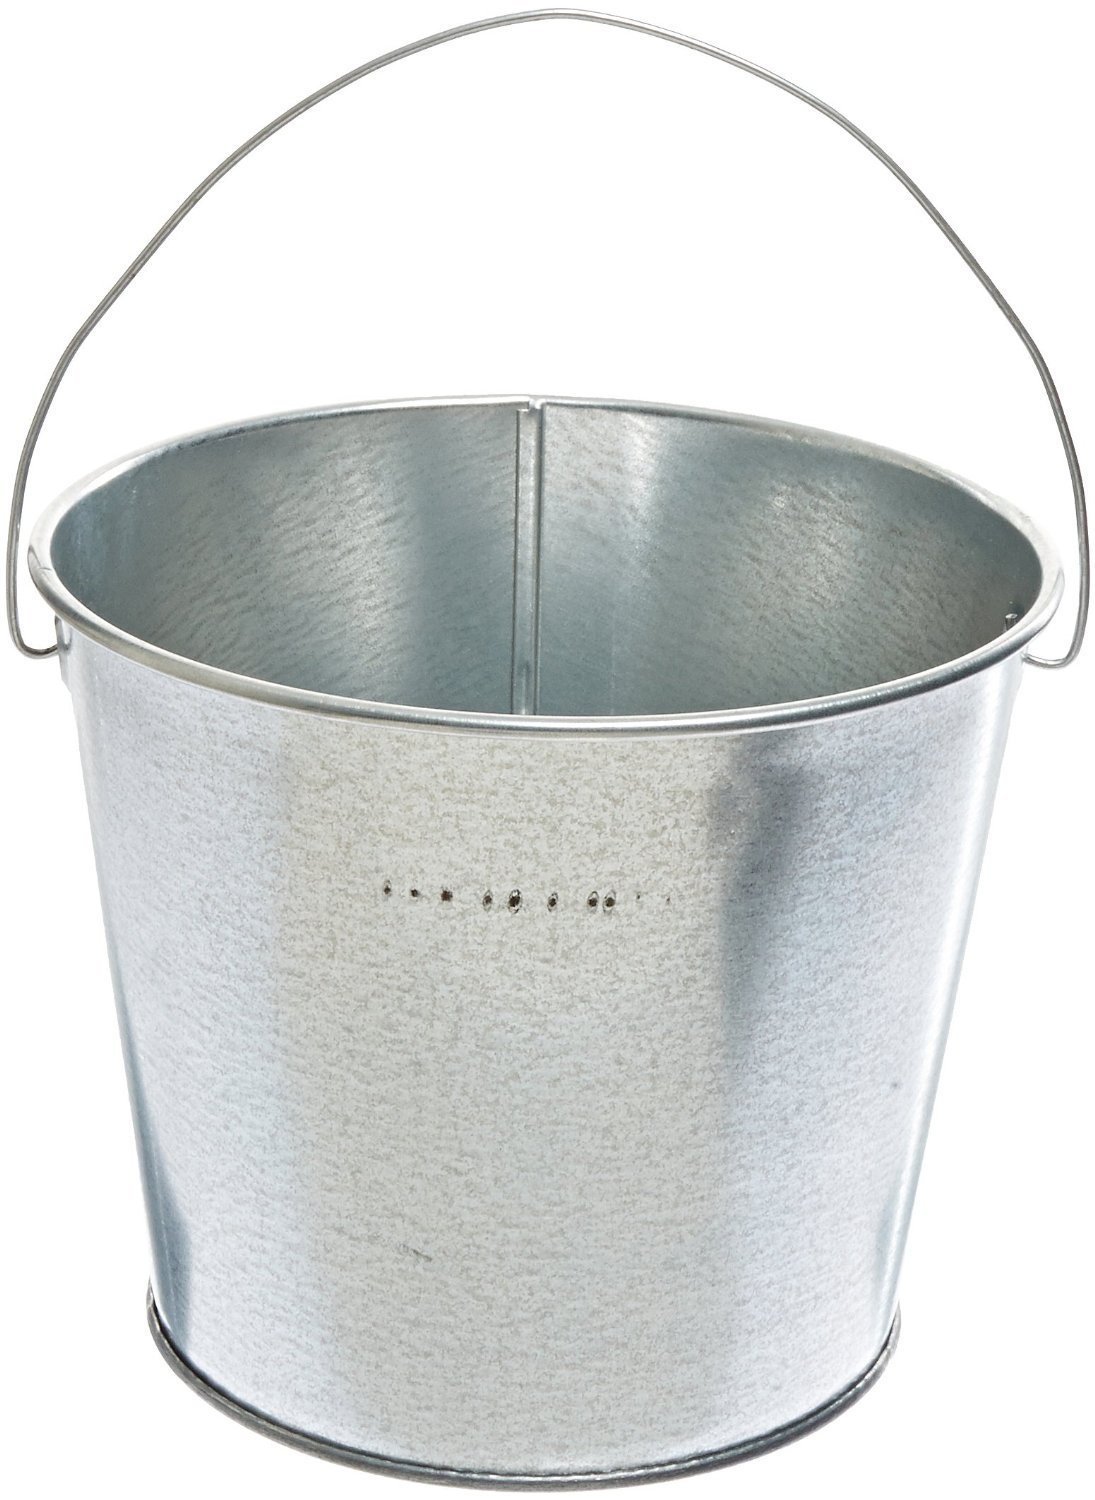 Justrite 26803 Personal Size Smoking Receptacle Replacement Pail